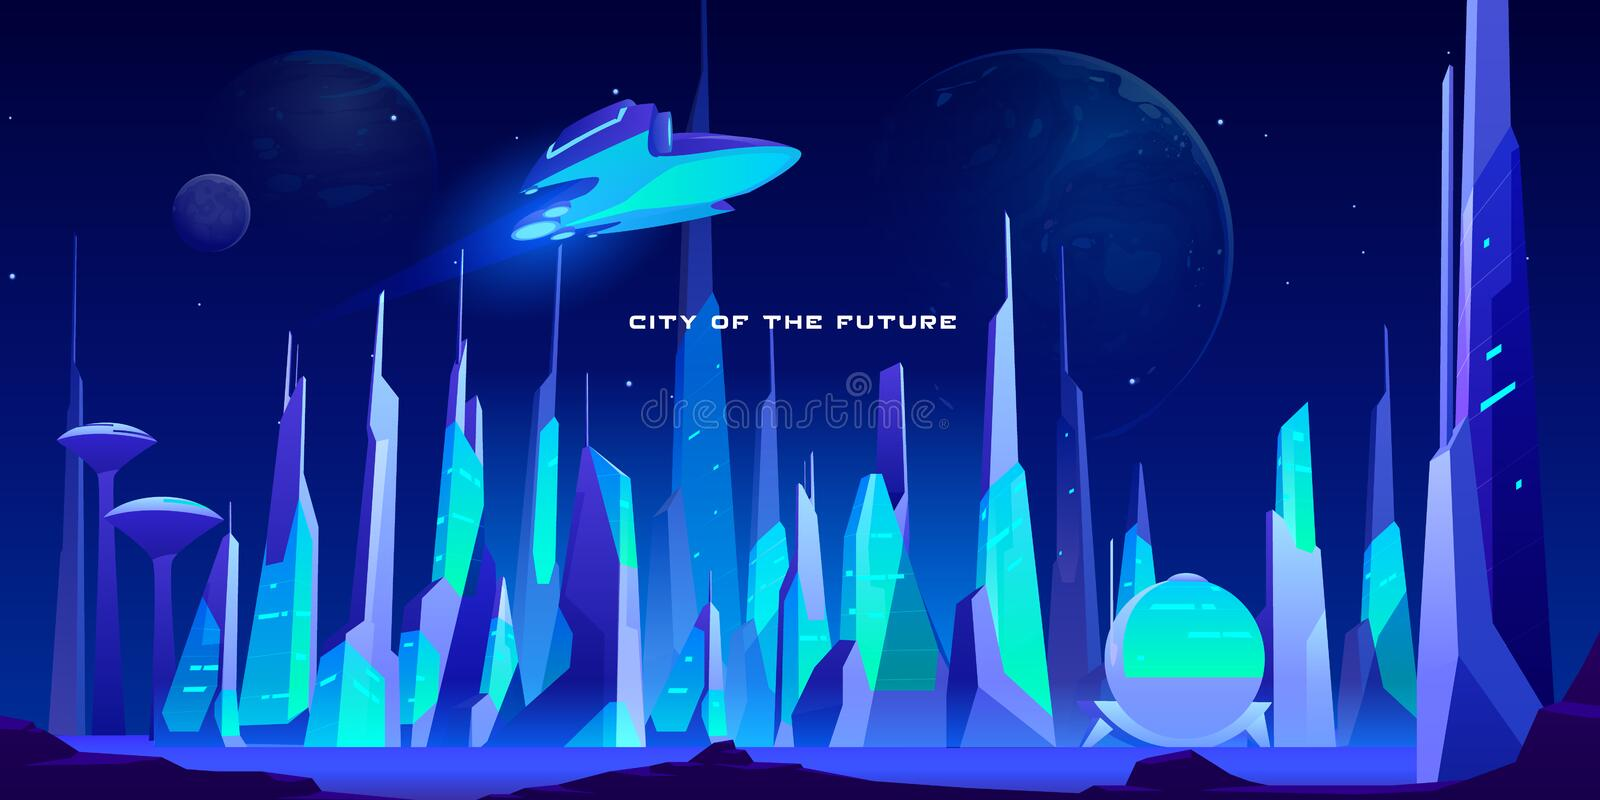 City future at night in neon lights, architecture. City of future at night in neon lights. Spaceship flying above futuristic cityscape with glowing illumination royalty free illustration